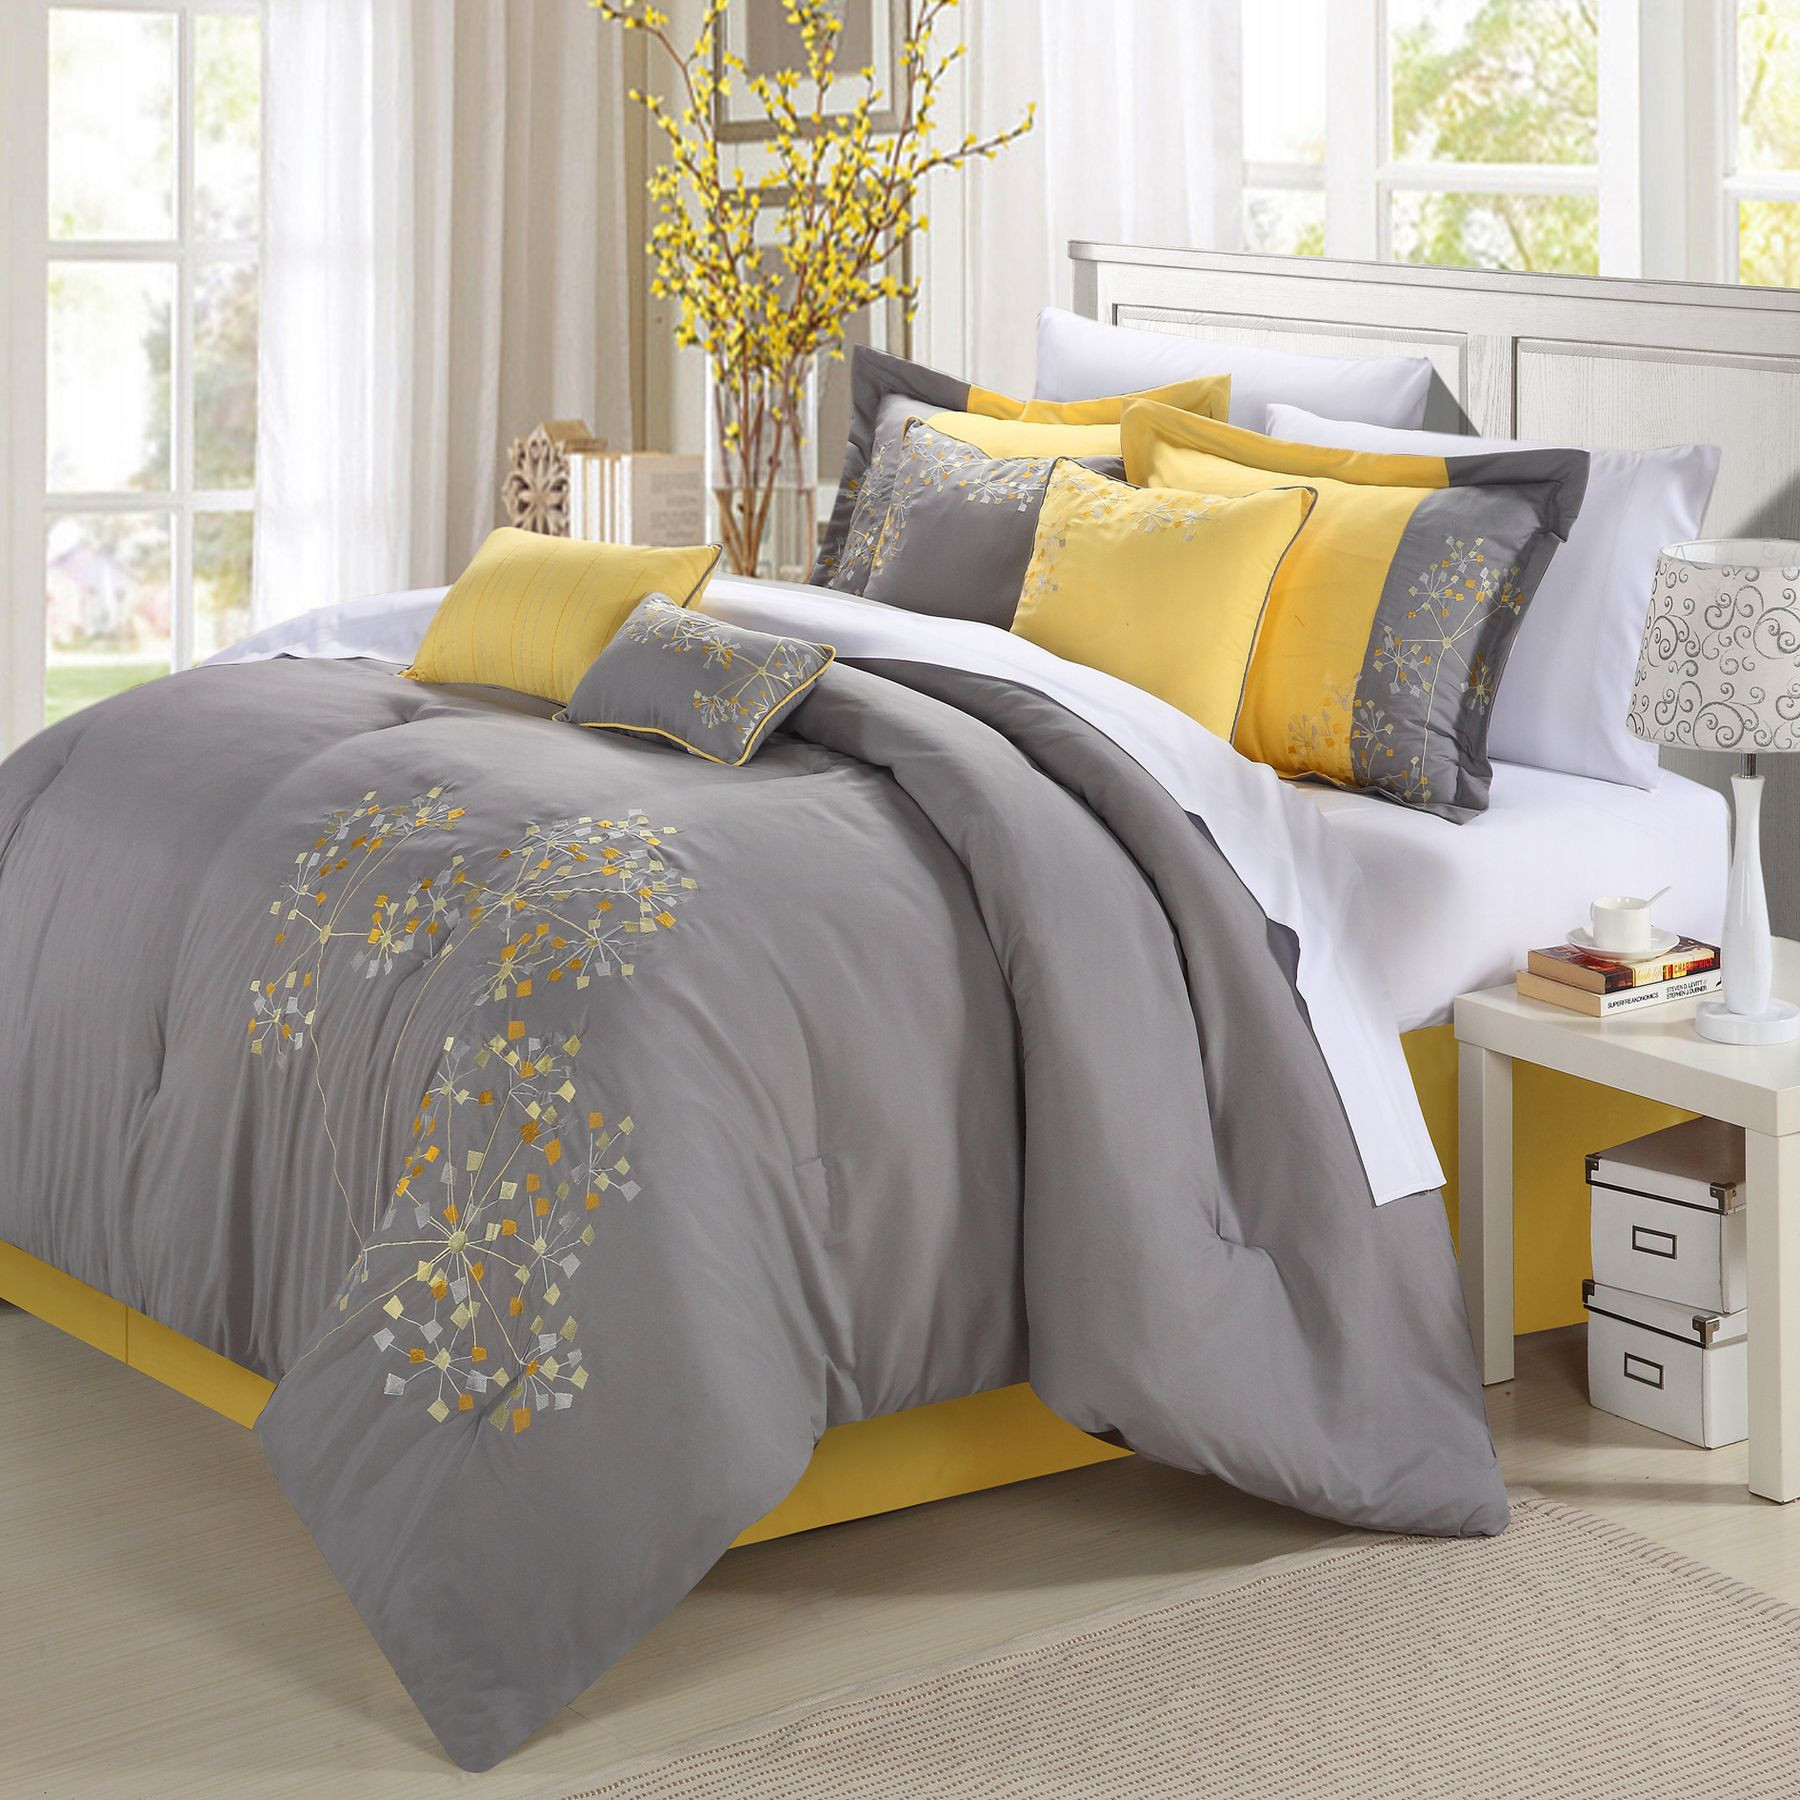 Pink floral Yellow Comforter Bed In A Bag Set 8 piece